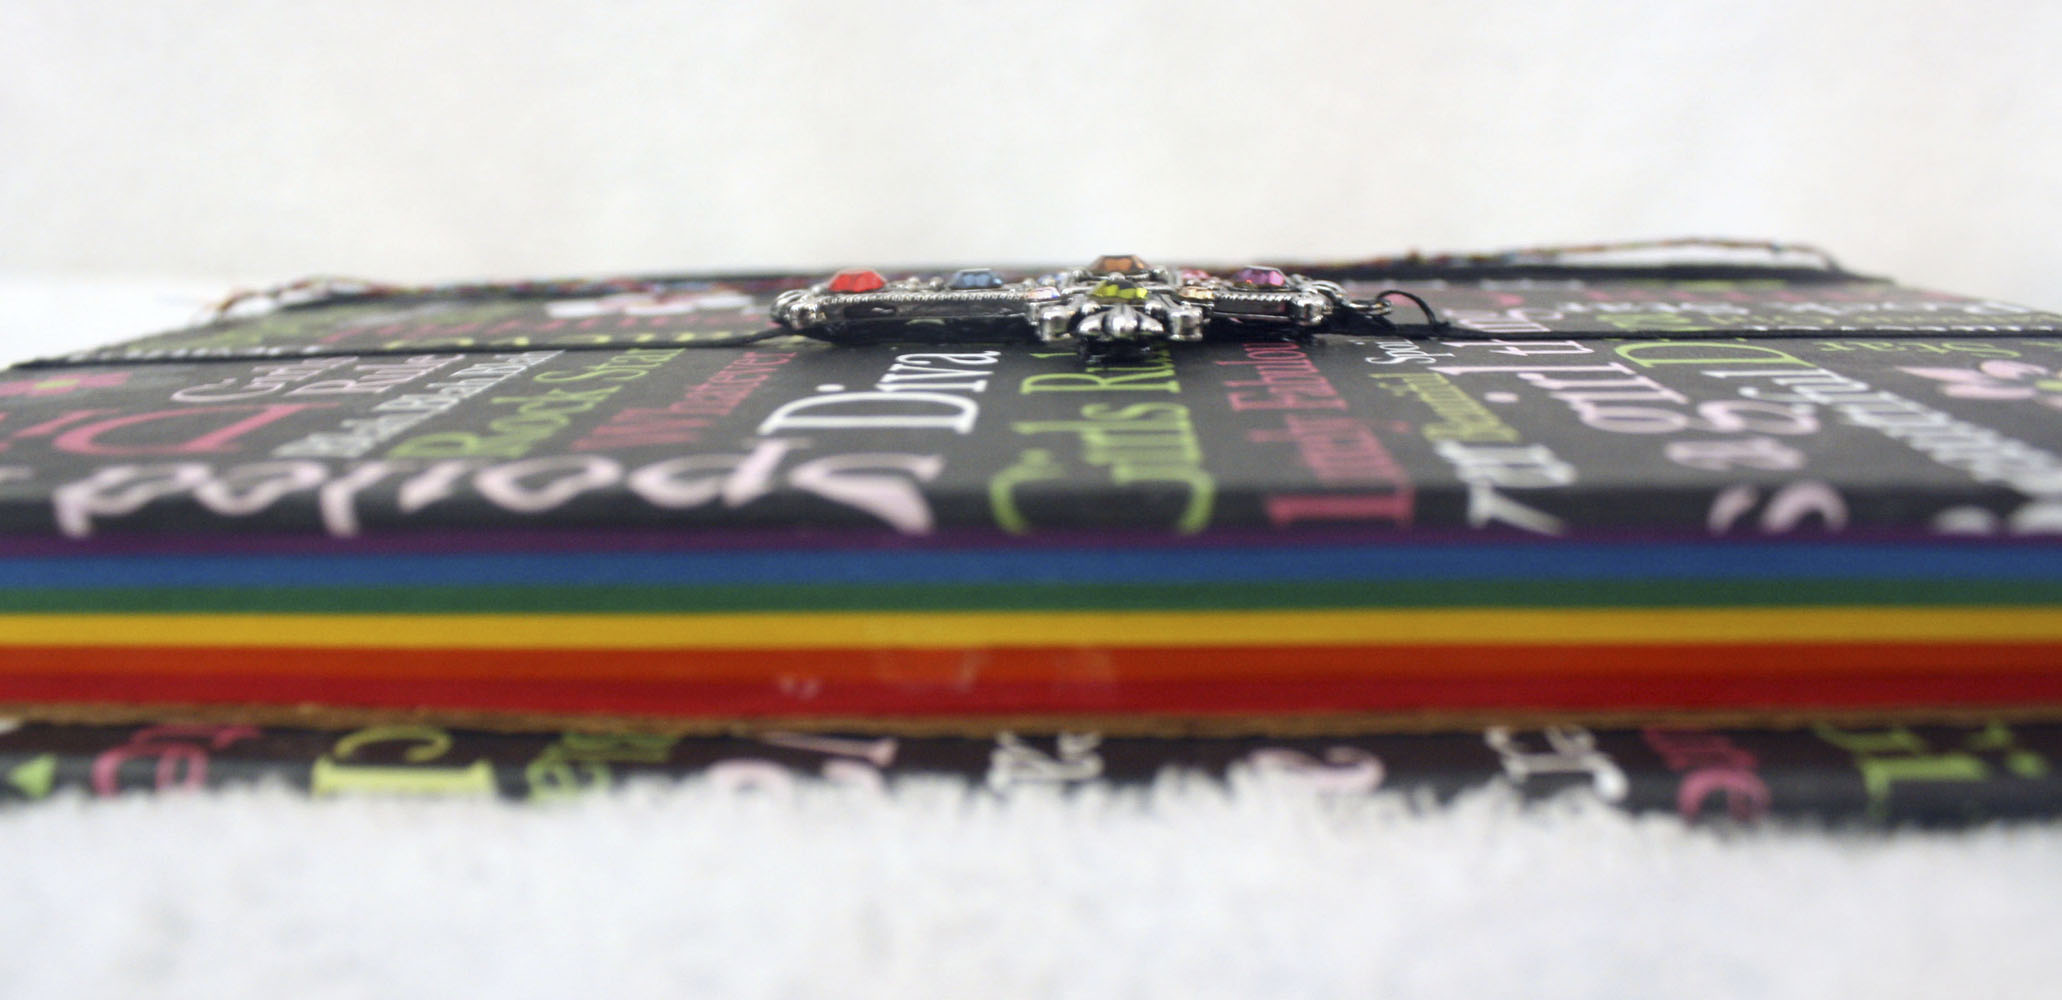 Rainbow Book Side View